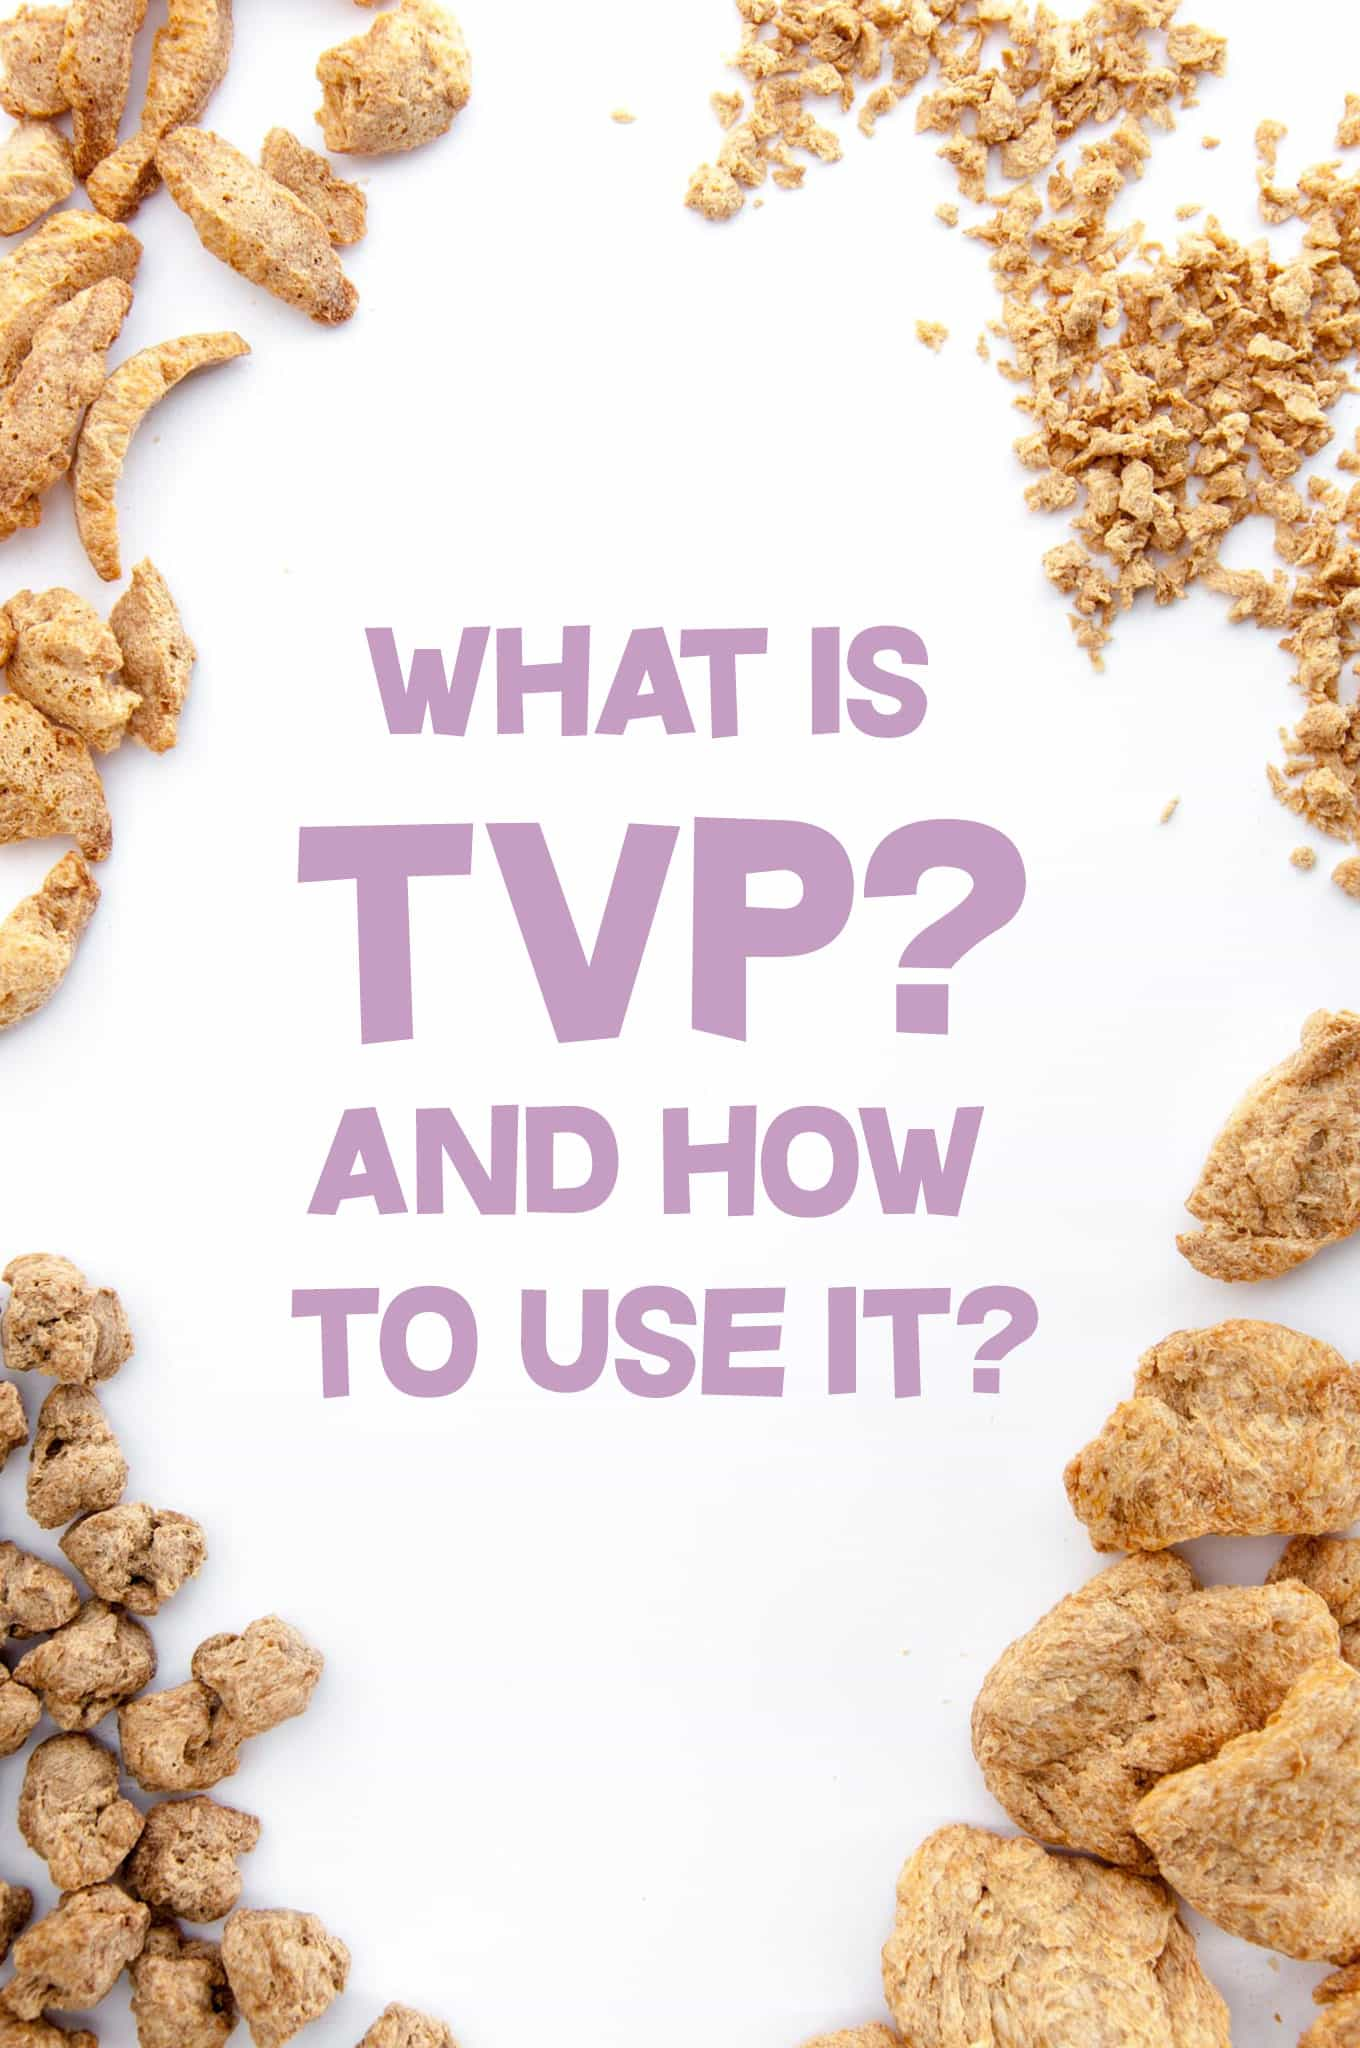 TVP Textured Vegetable Protein - What is it and how to use it? | ElephantasticVegan.com